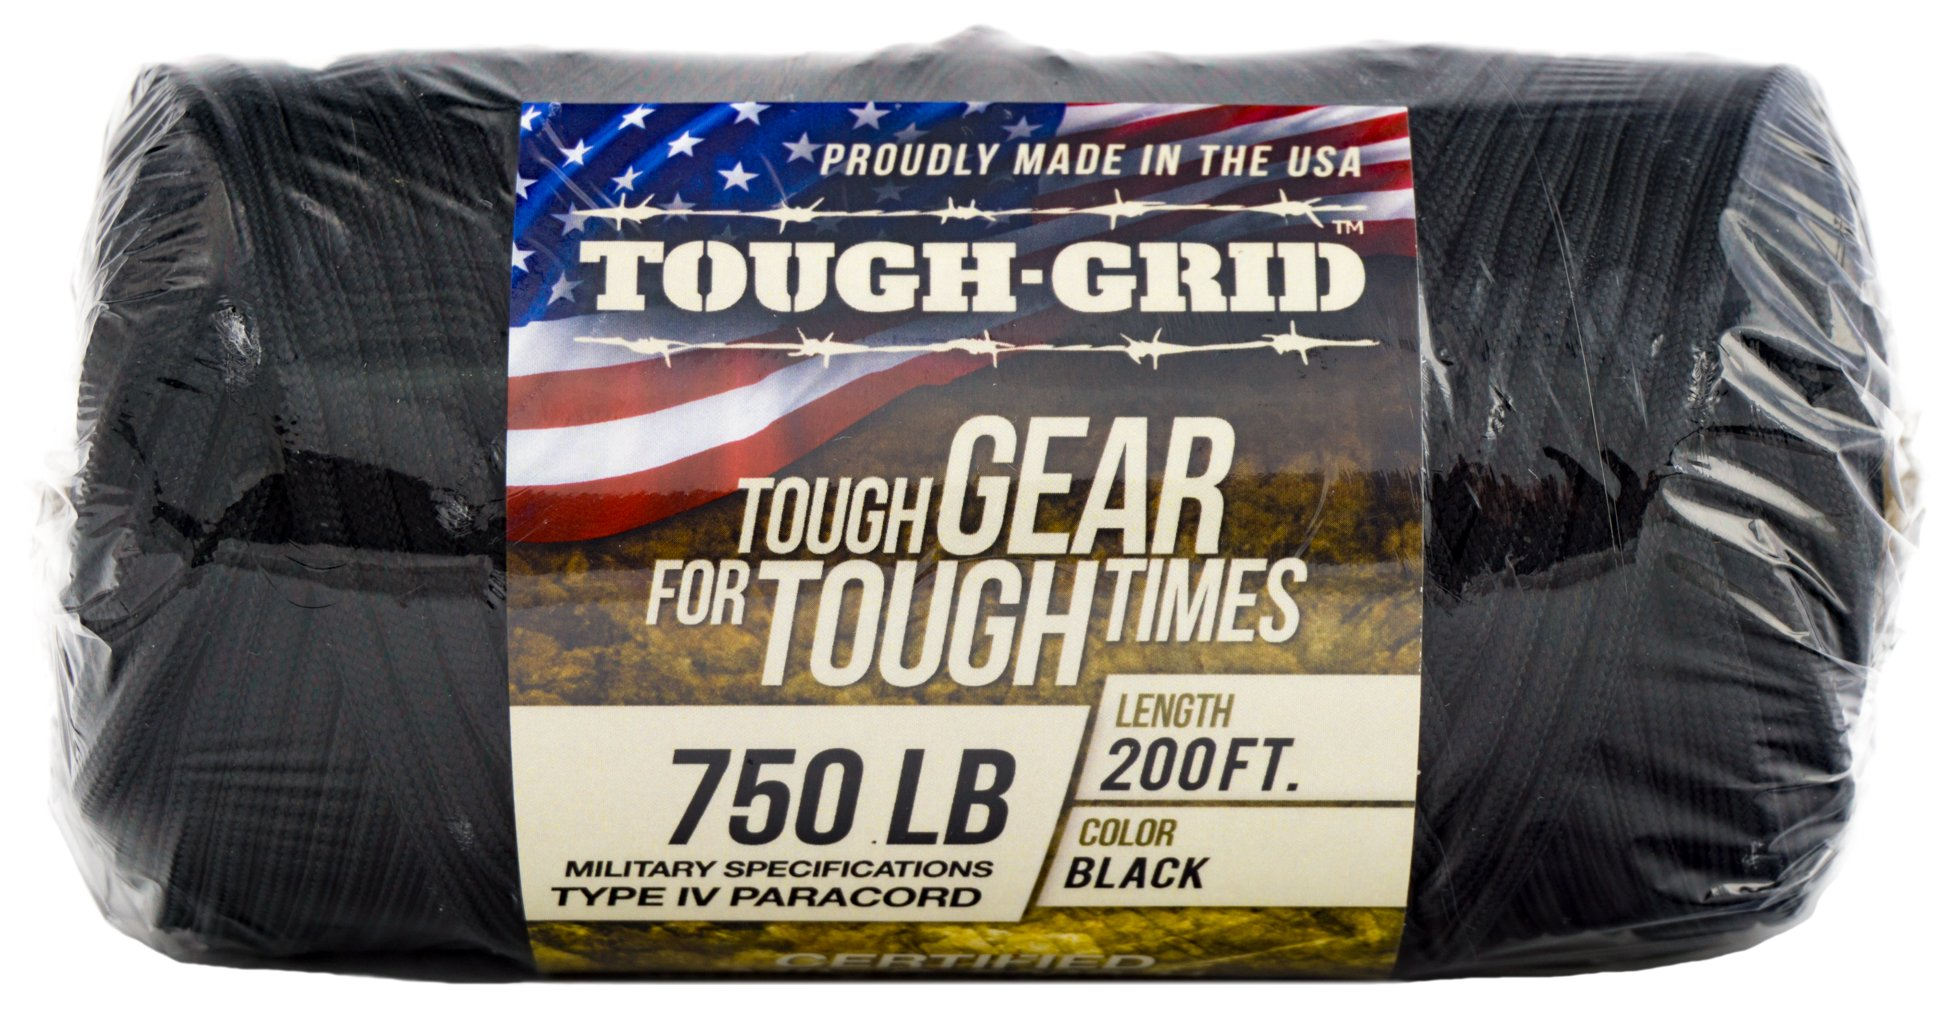 TOUGH-GRID 750lb Black Paracord/Parachute Cord - Genuine Mil Spec Type IV 750lb Paracord Used by The US Military (MIl-C-5040-H) - 100% Nylon - Made in The USA. 50Ft. - Black by TOUGH-GRID (Image #9)